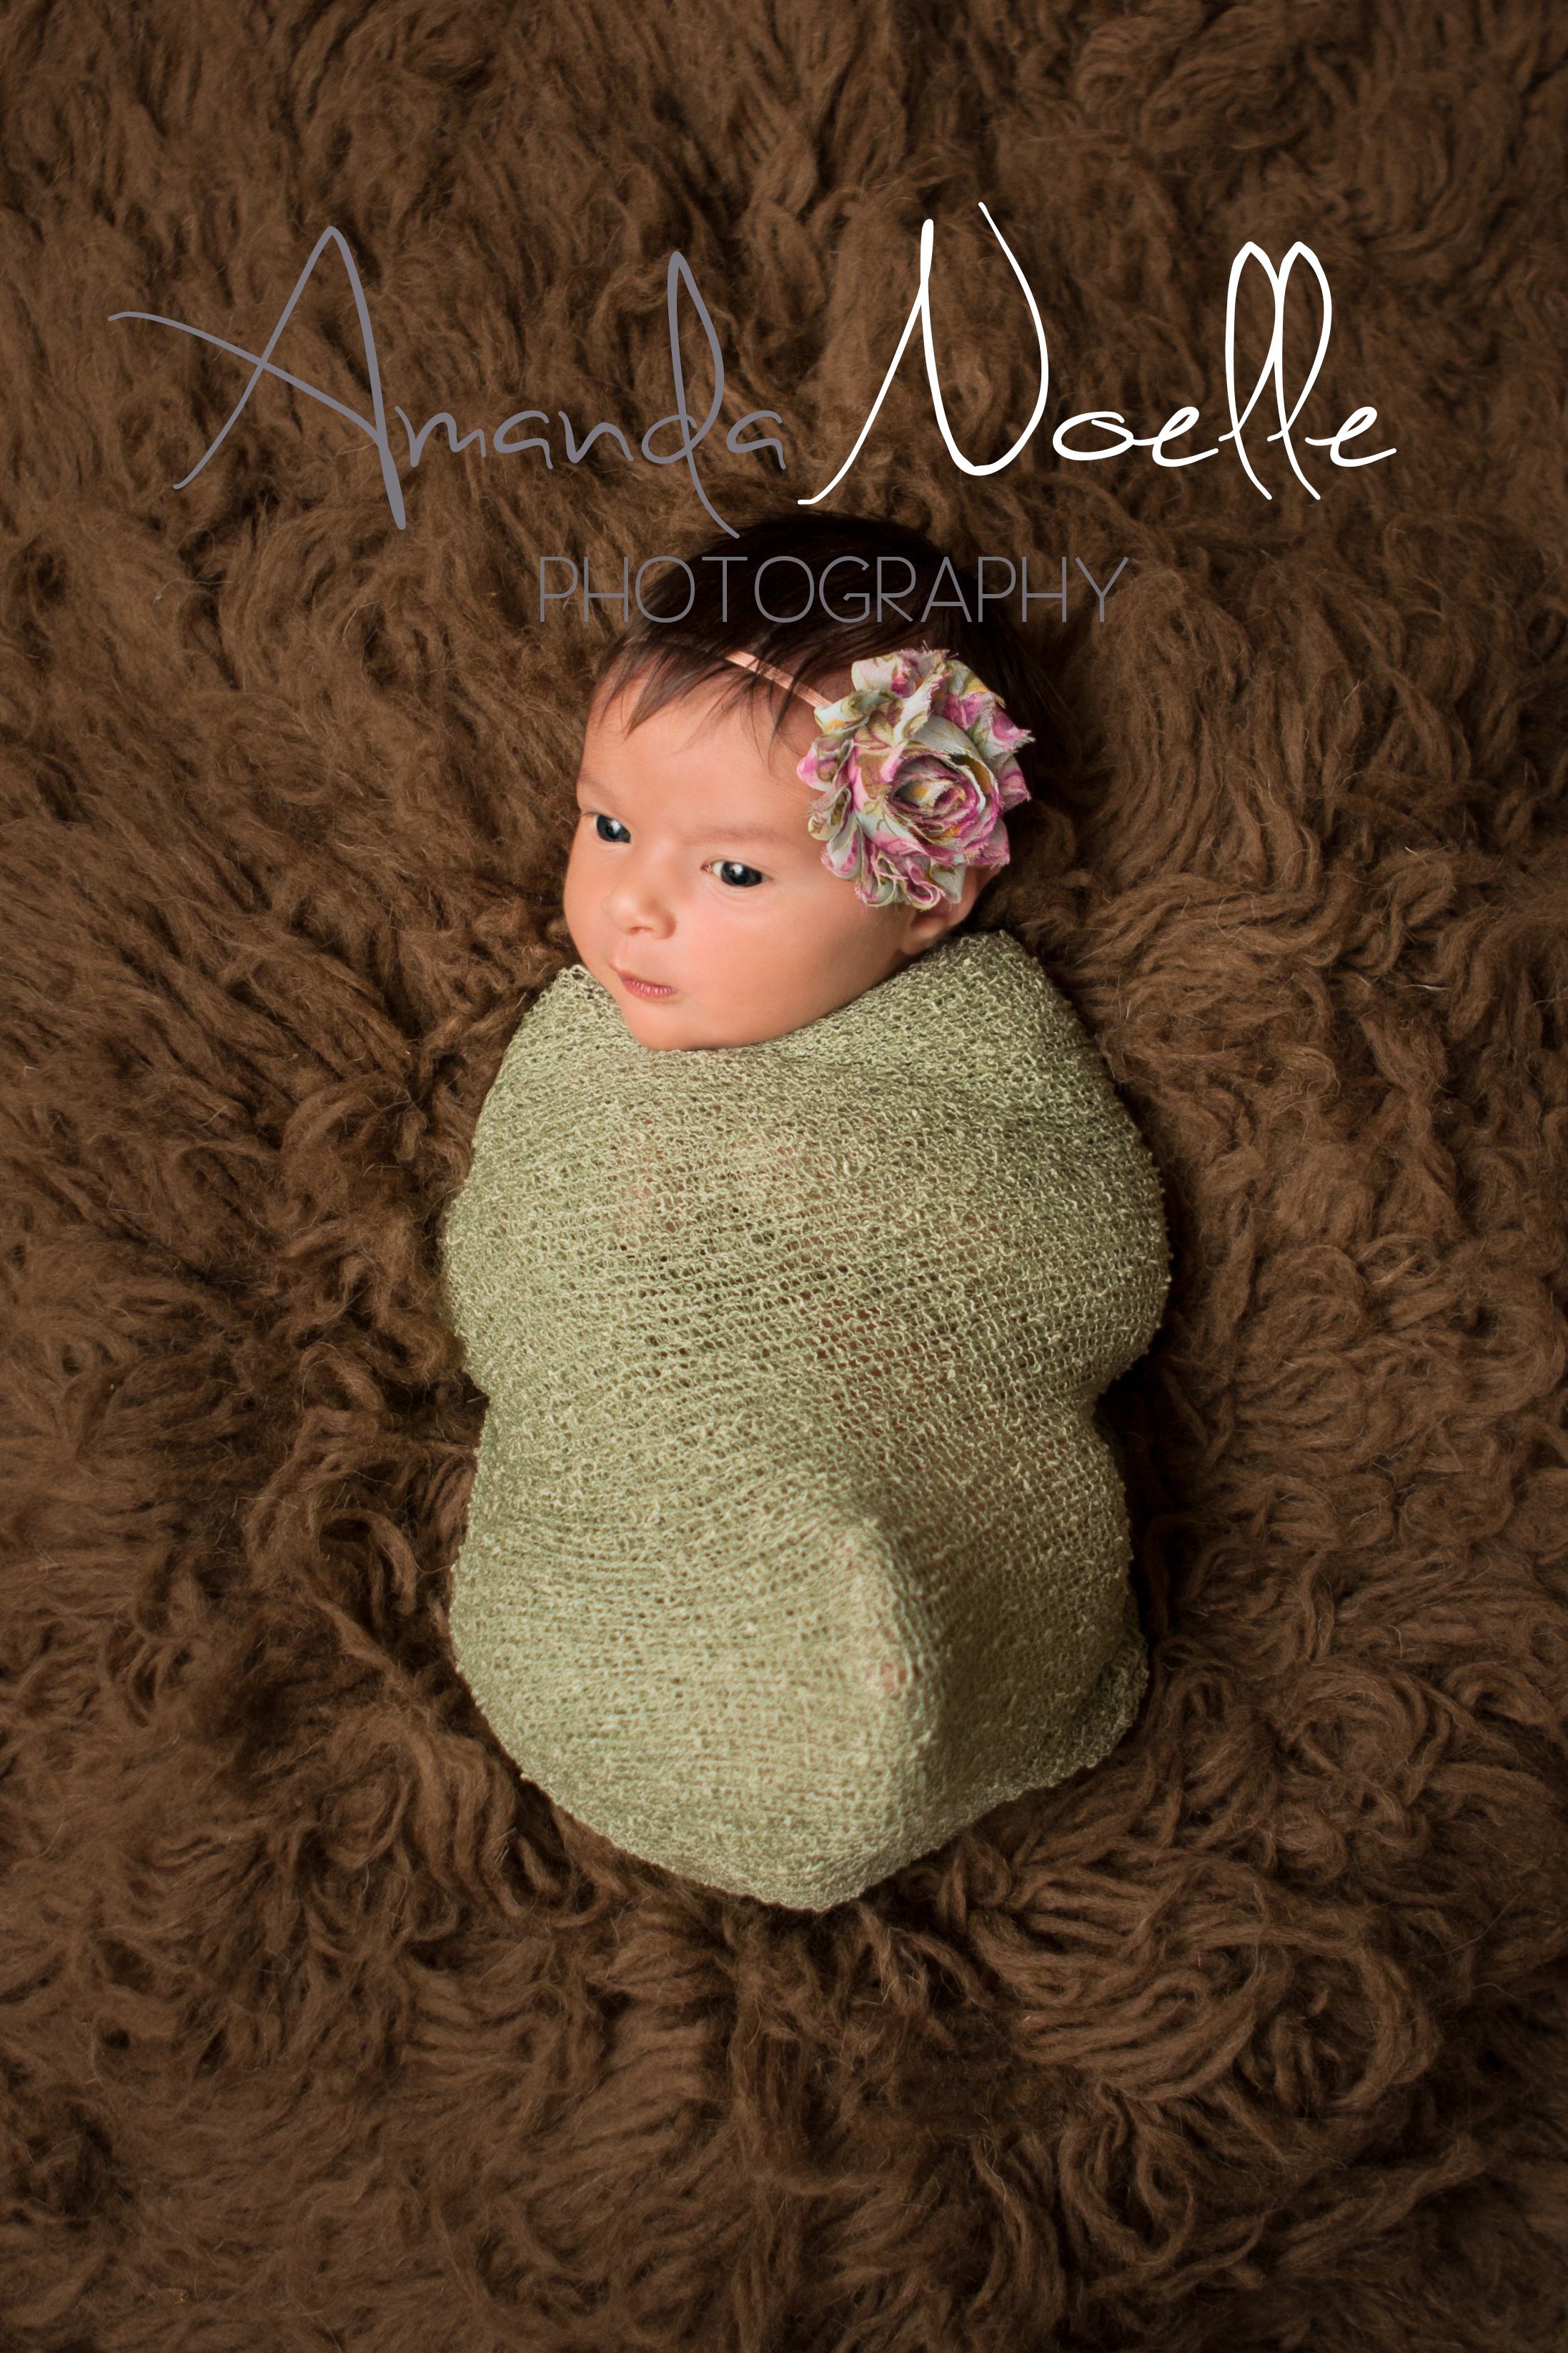 Newborn baby girl awake with pink and green shabby chic flower   headband wrapped in stretch knit green wrap on brown flokati rug, Westchester, County New York Newborn Photographer, Amanda Noelle Photography.